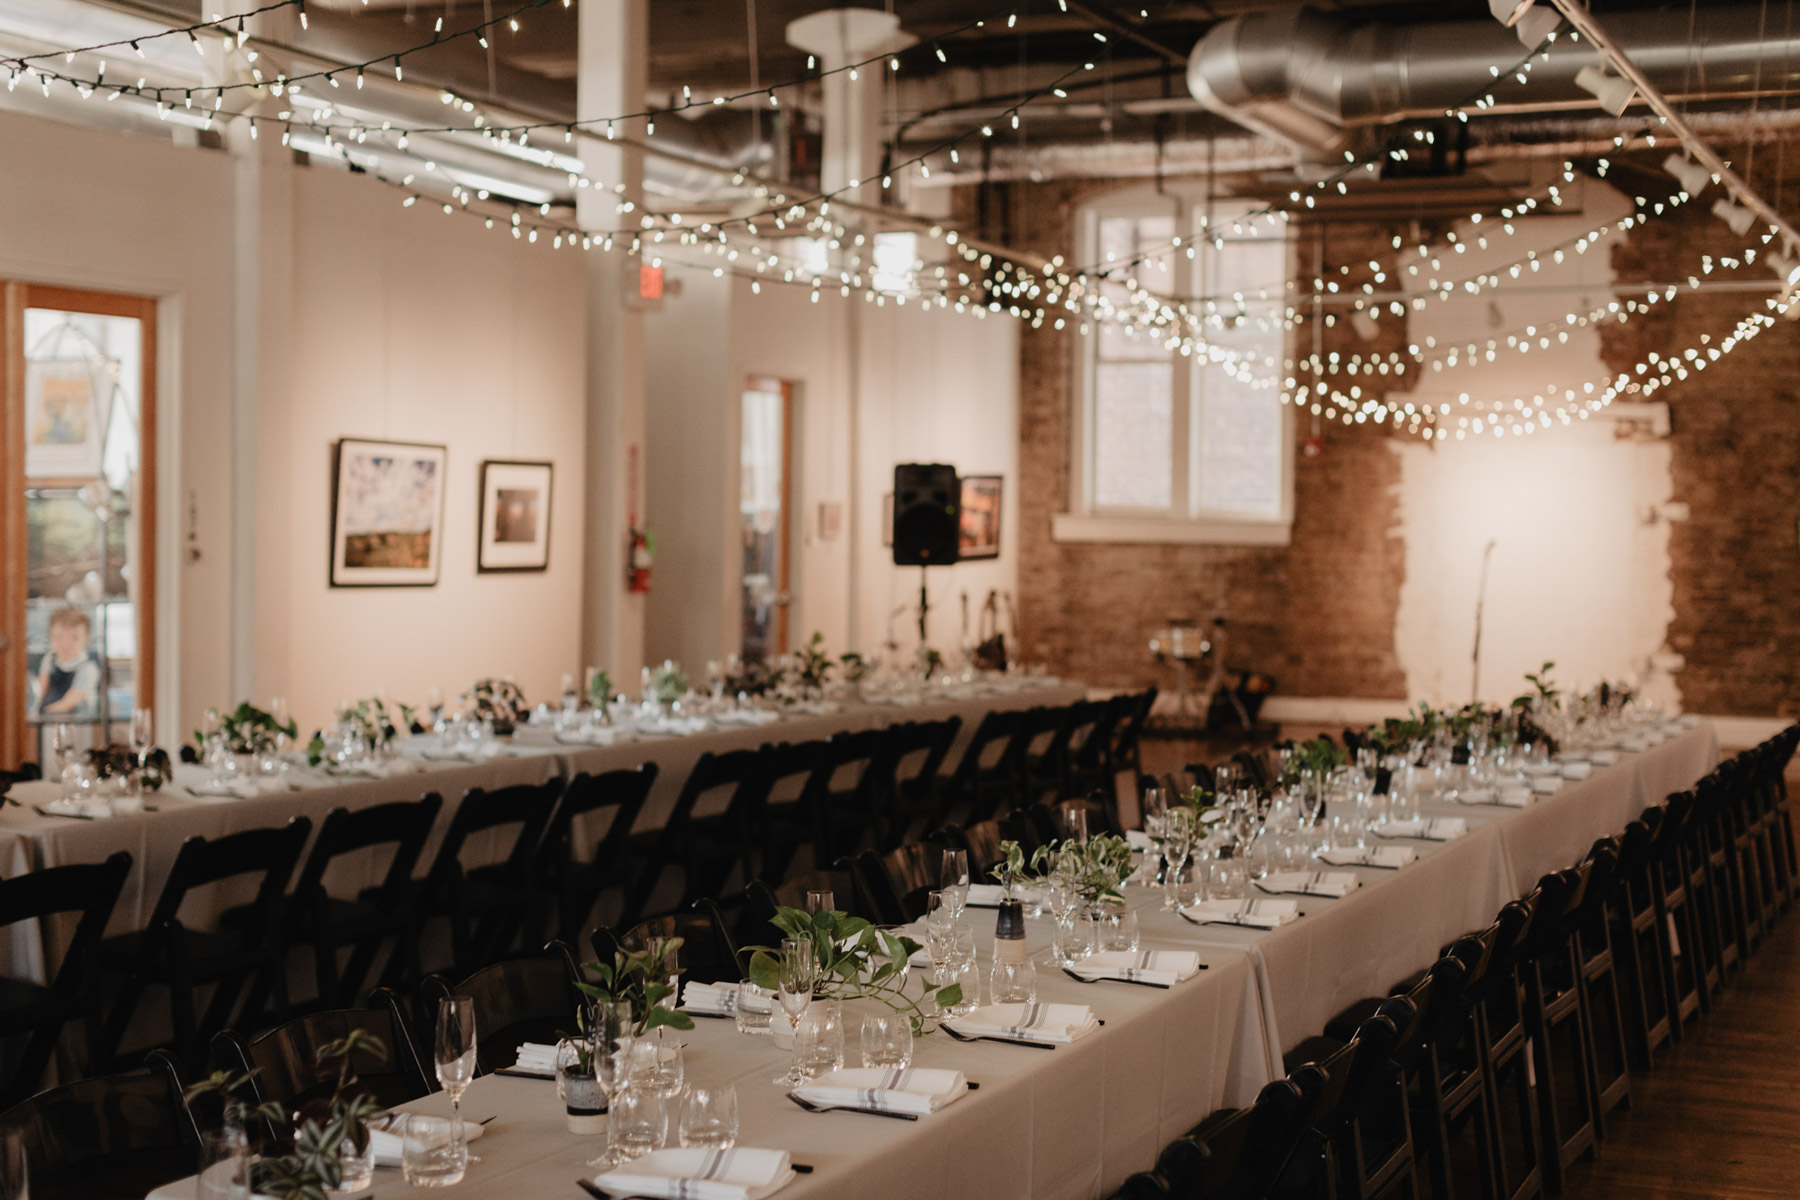 Wedding Venues in Knoxville TN | The Emporium Center